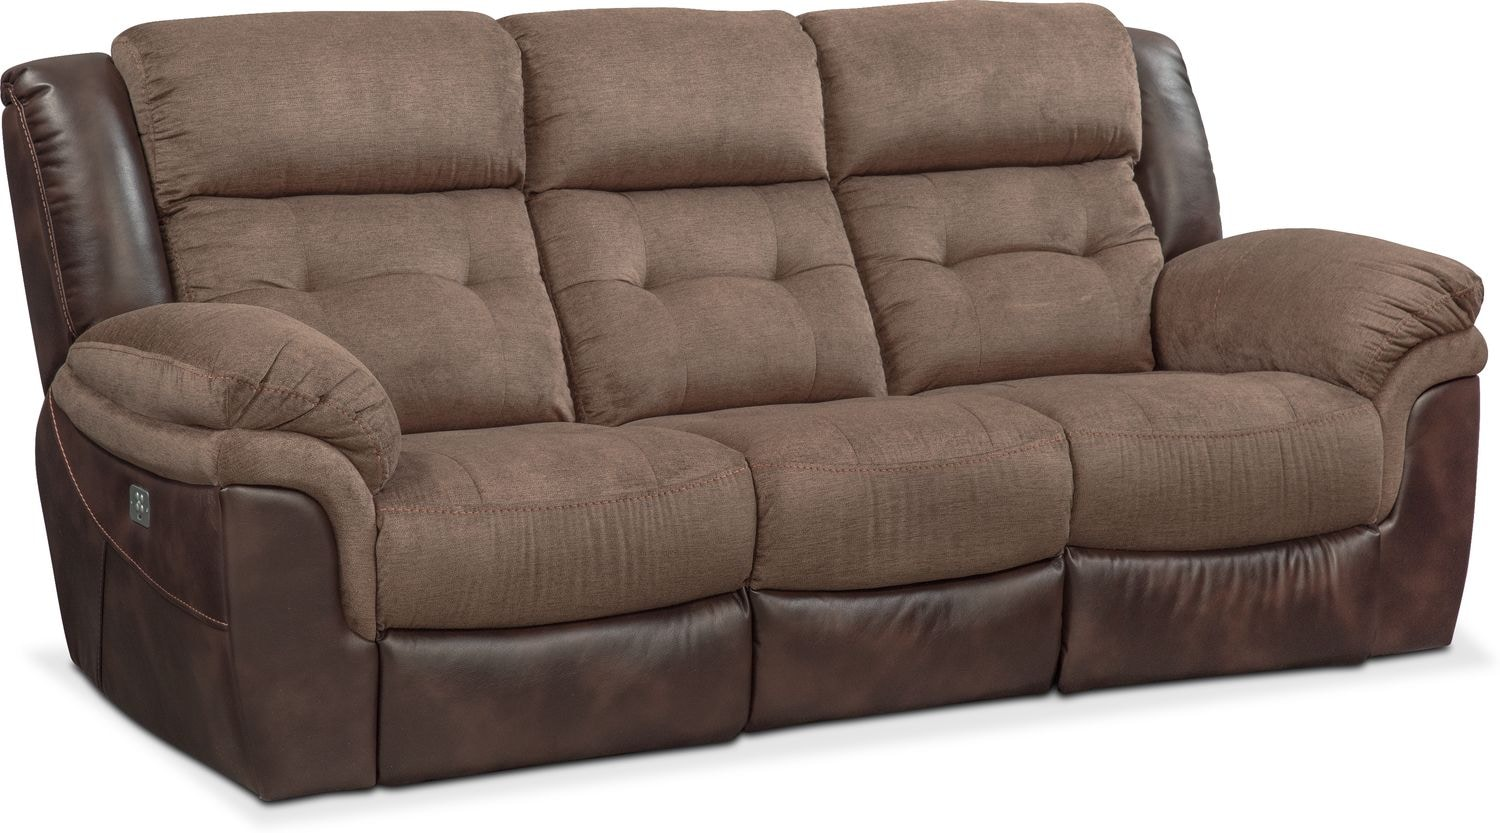 Tacoma Dual Power Reclining Sofa And Loveseat Set Brown